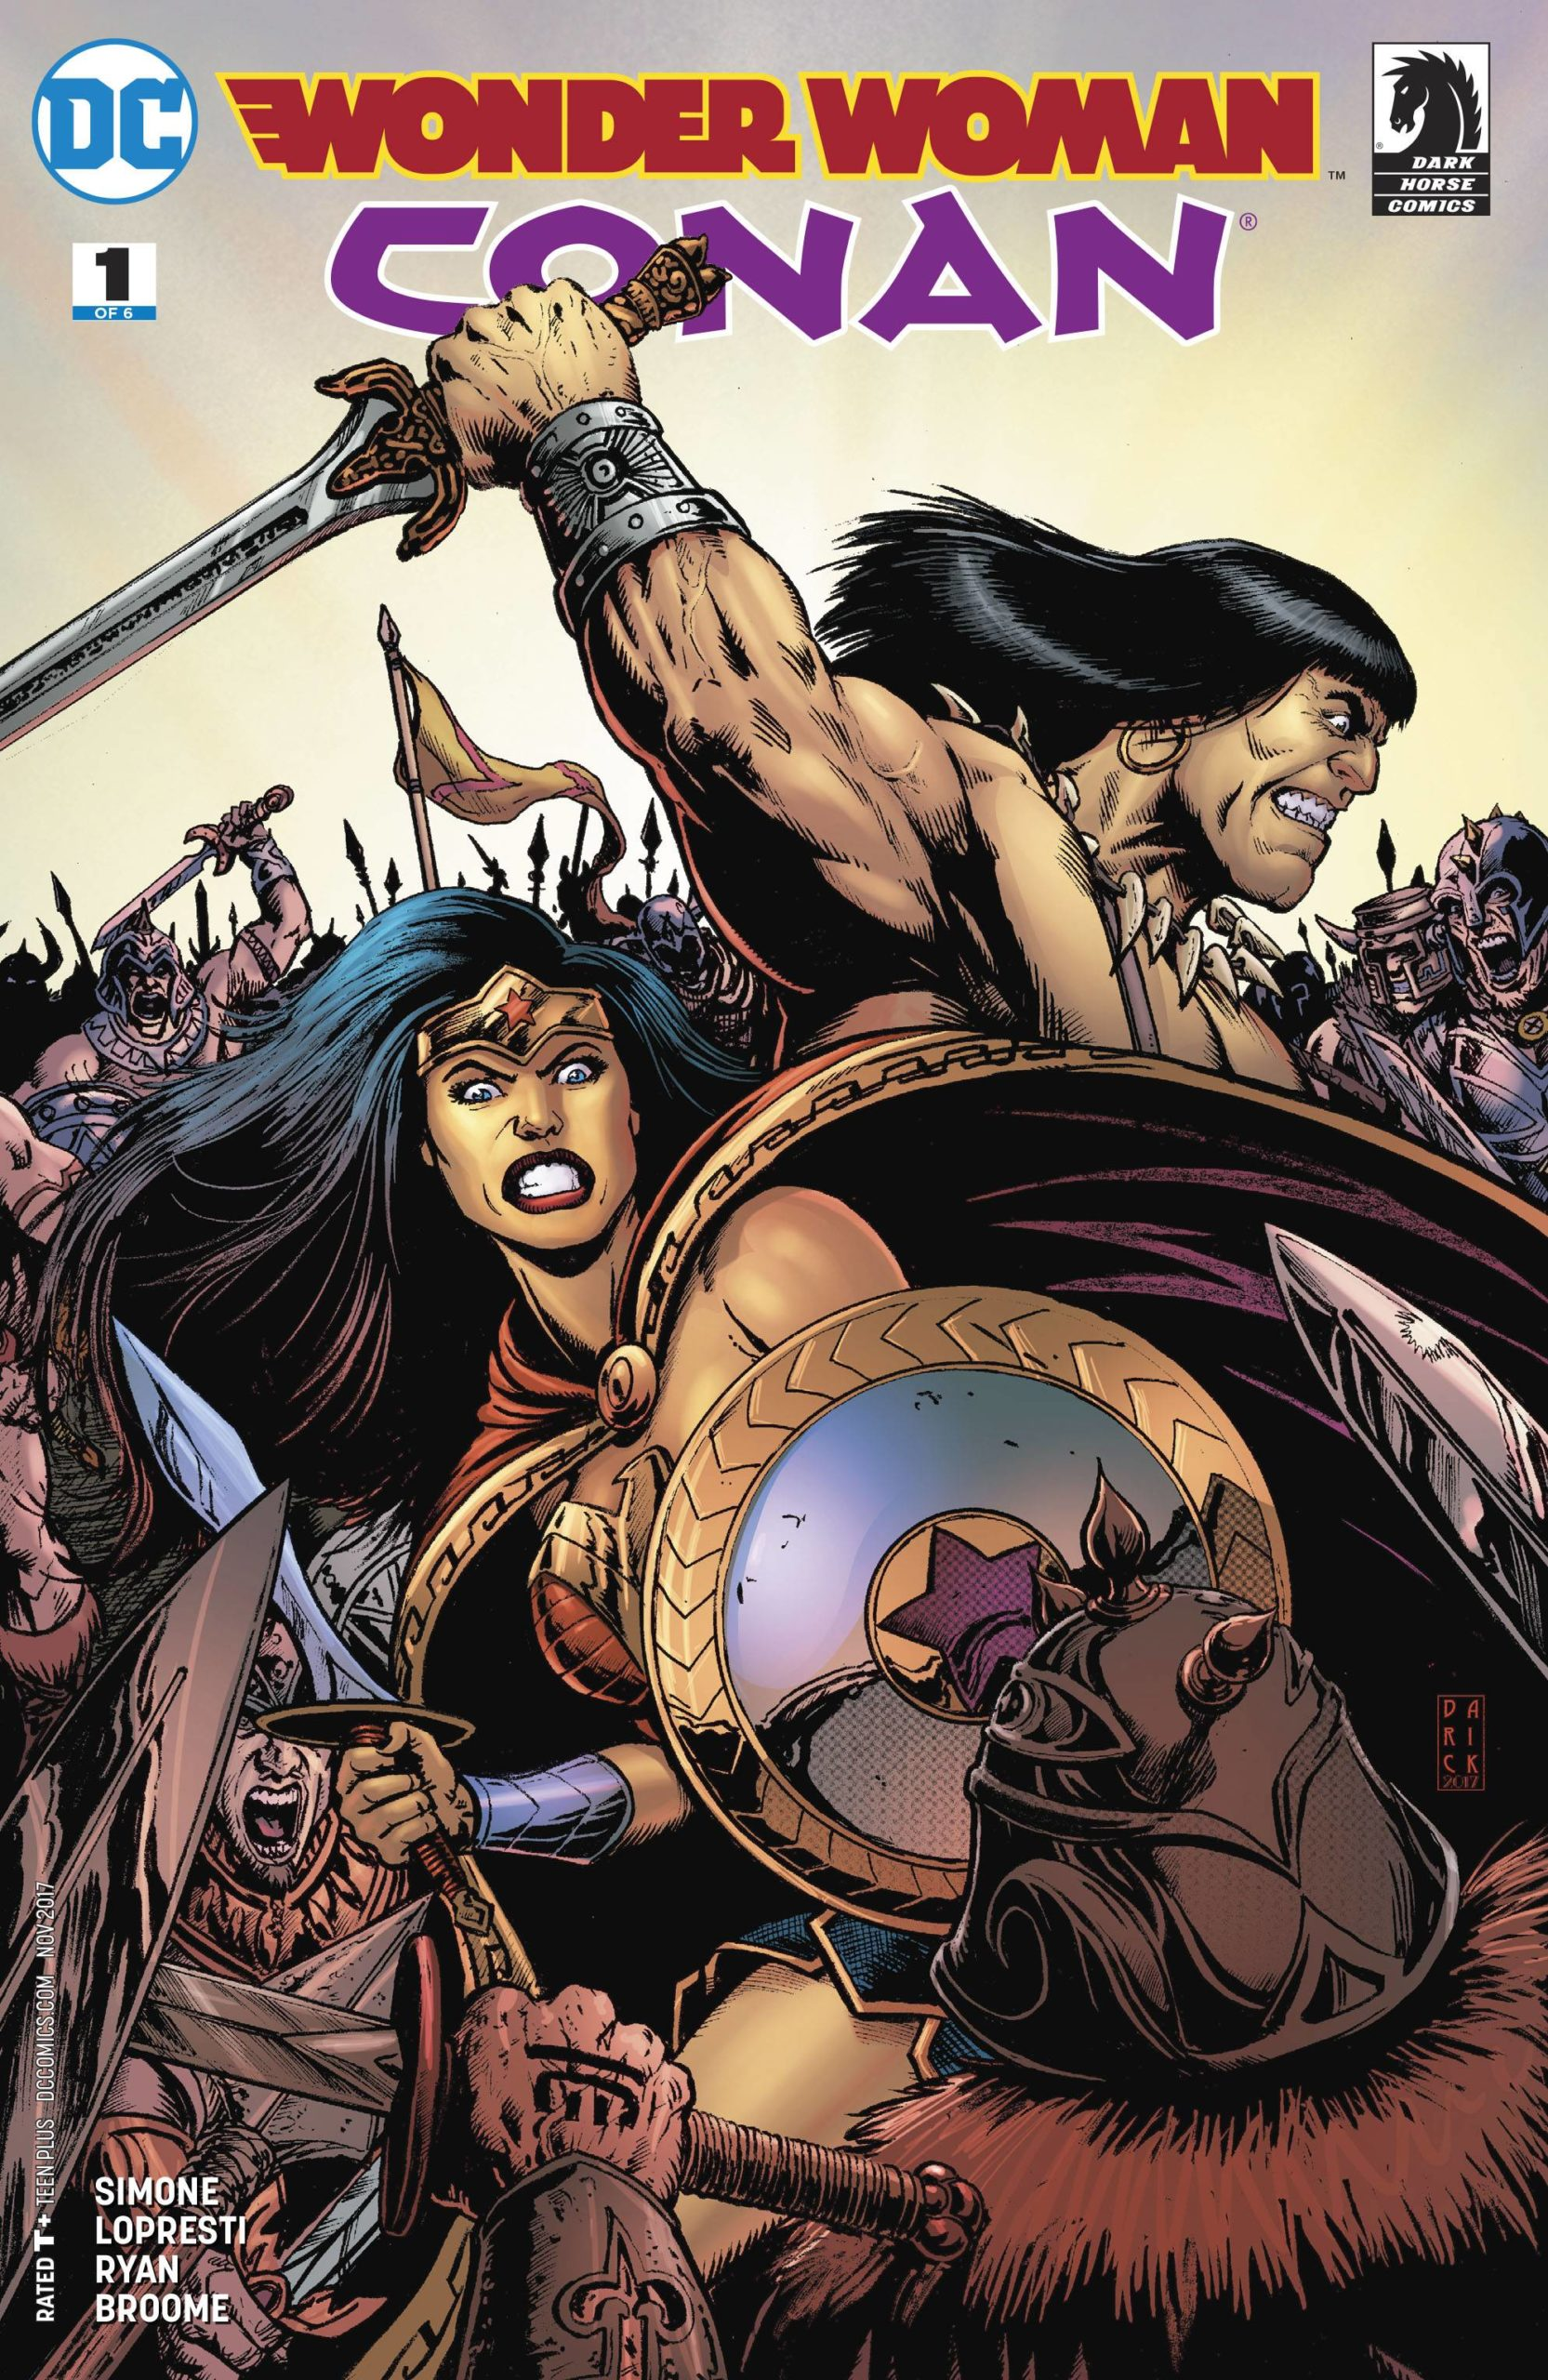 WONDER WOMAN CONAN (MS 6)